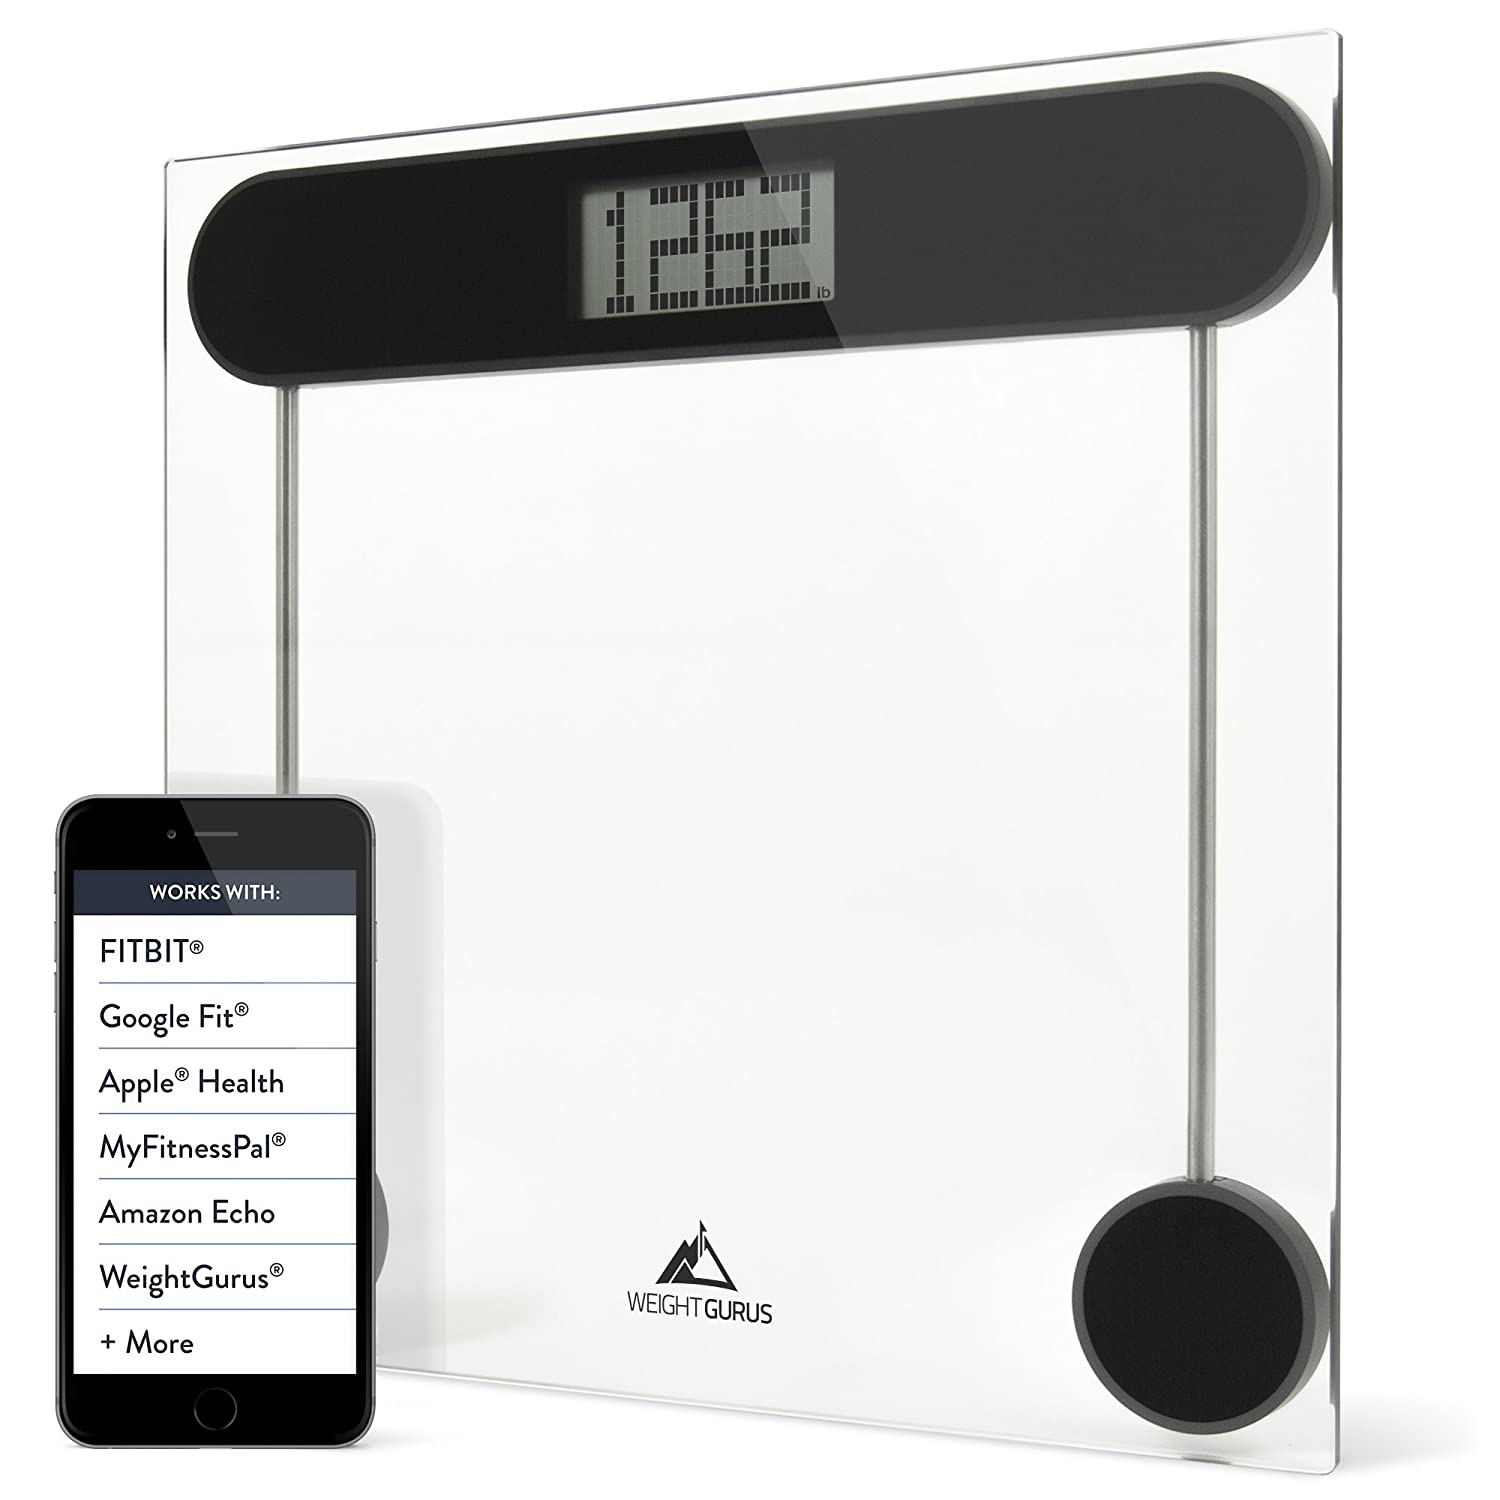 Amazoncom Weight Gurus Digital Glass Bathroom Scale Large - Large display digital bathroom scales for bathroom decor ideas